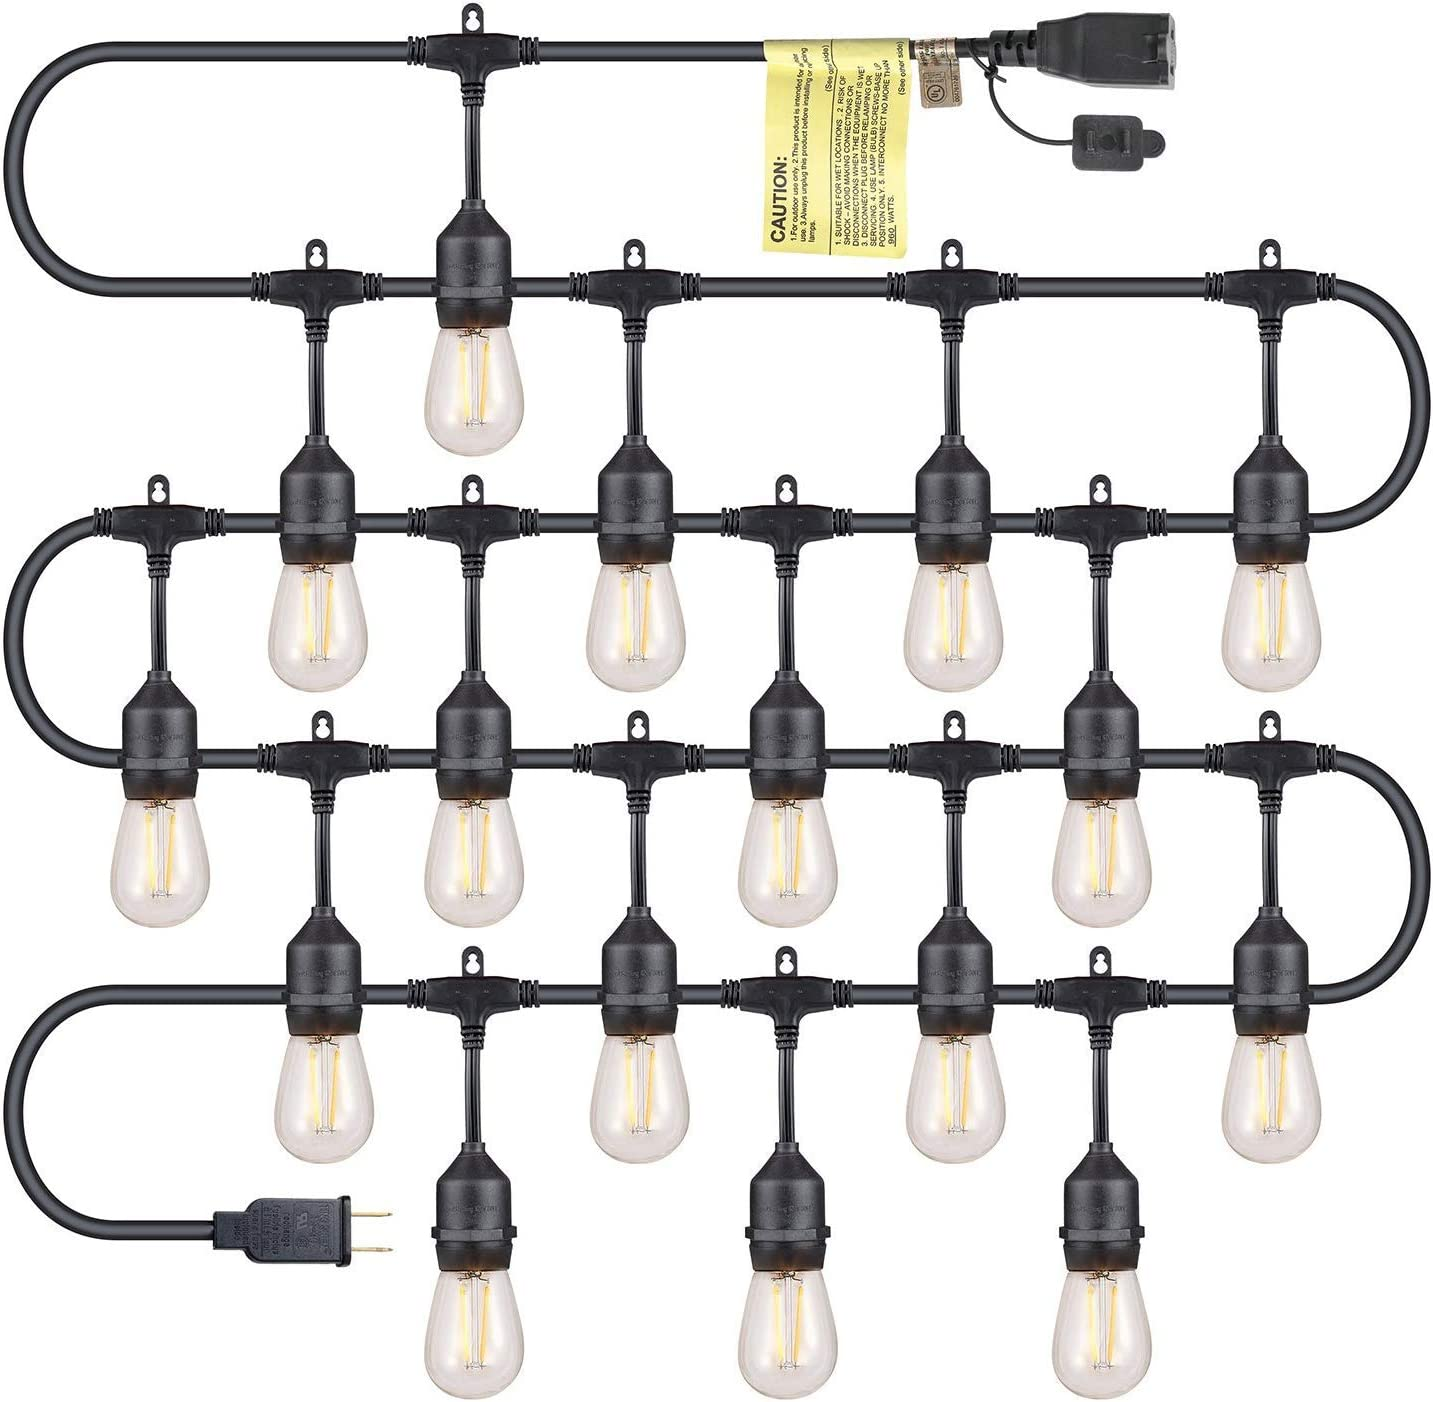 Dependable Direct 50FT Outdoor LED String Lights - 16 of 1.5W Vintage LED Edison Glass Bulbs Included - Waterproof Heavy Duty, Commercial Grade Strand with 16 Hanging Sockets